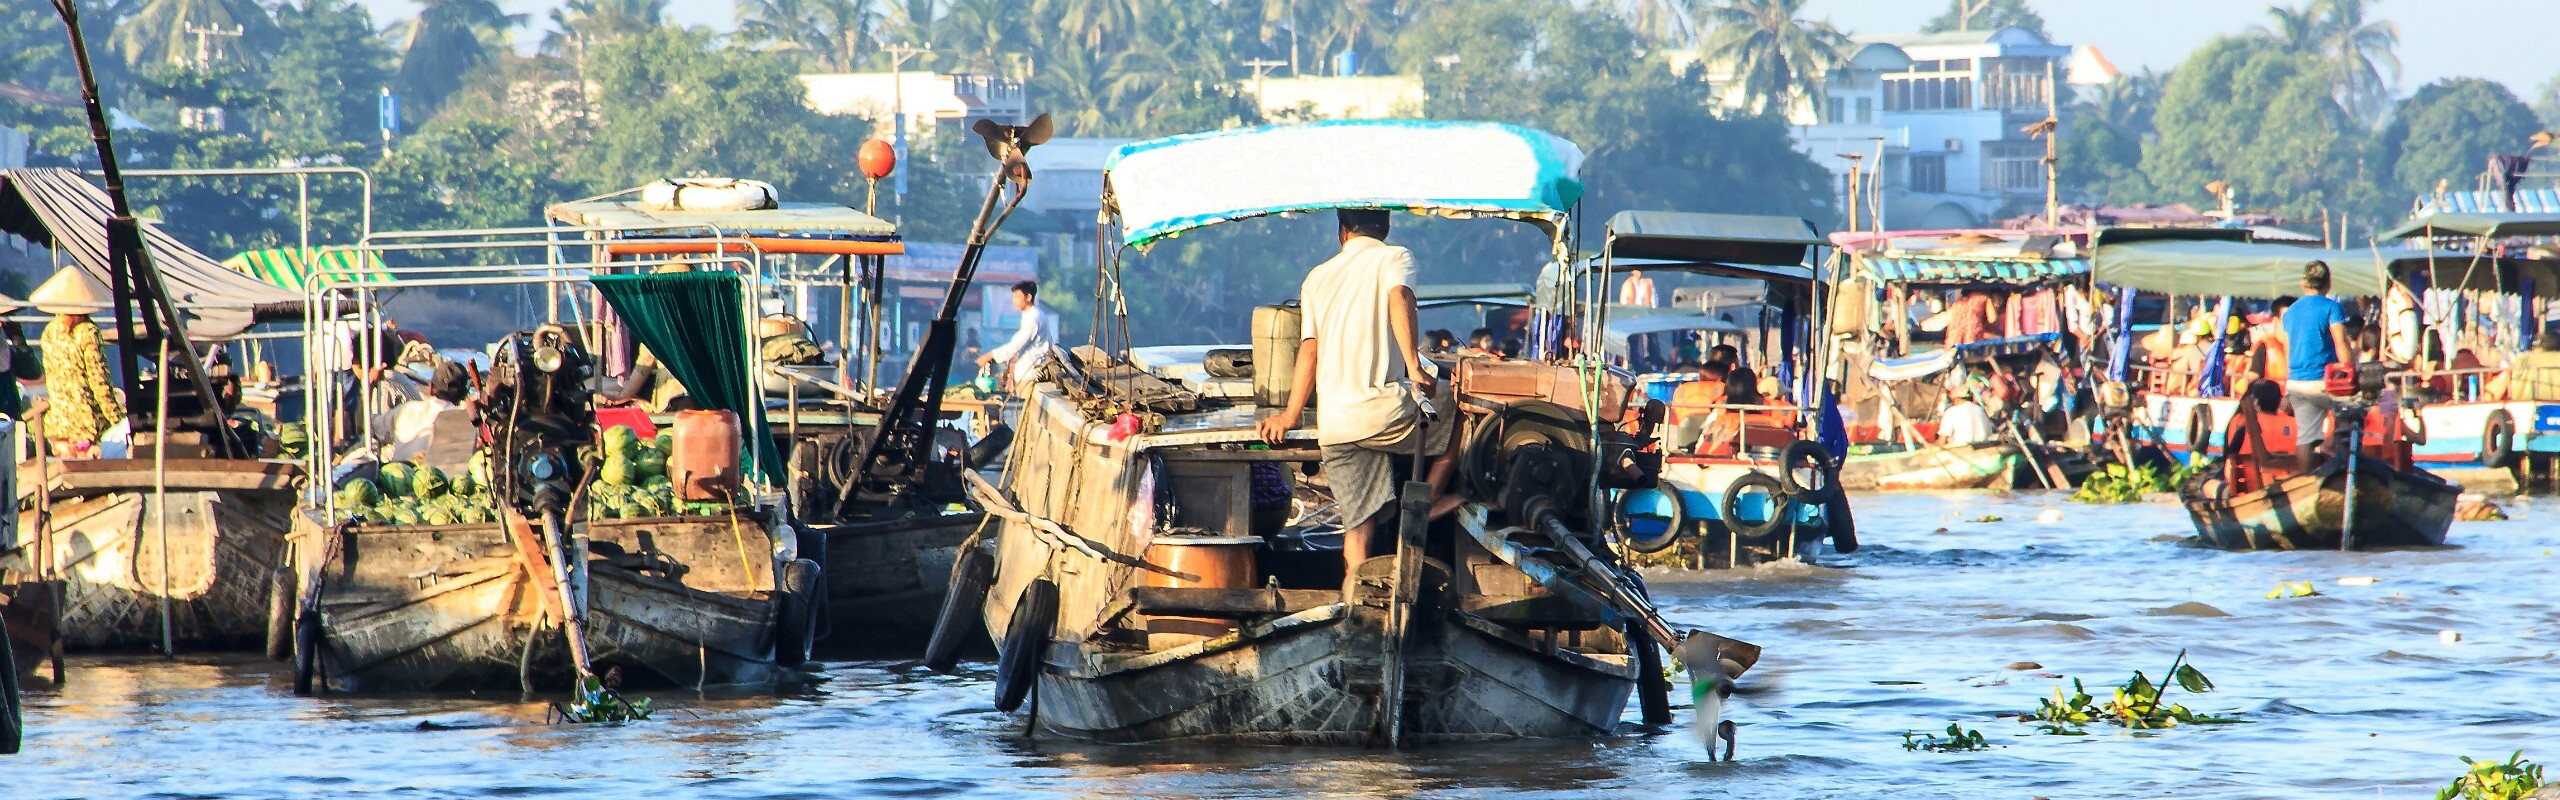 Shopping in the Mekong Delta